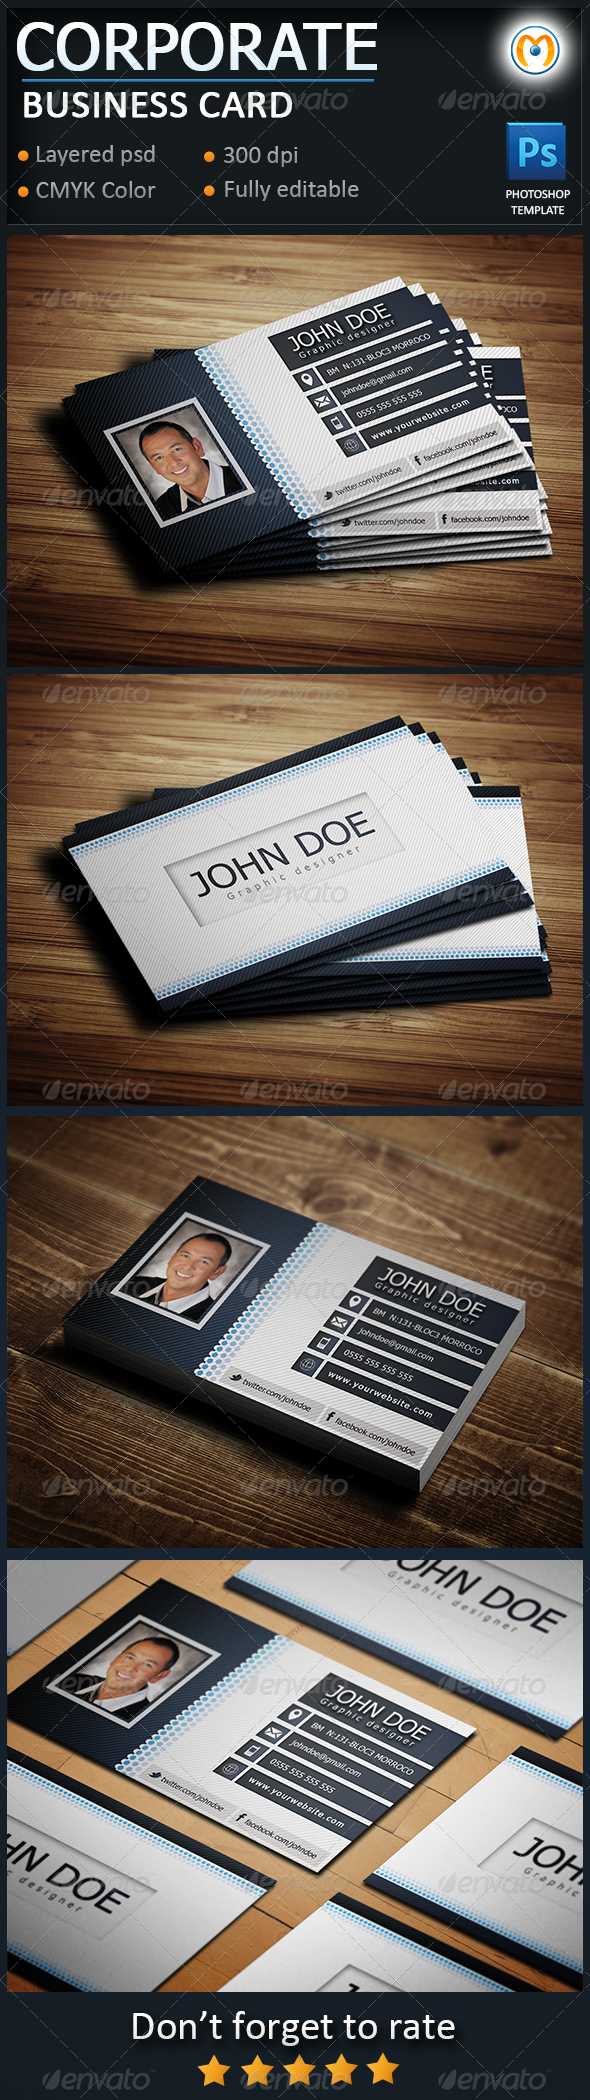 Corporate Business Card V.2 - Corporate Business Cards